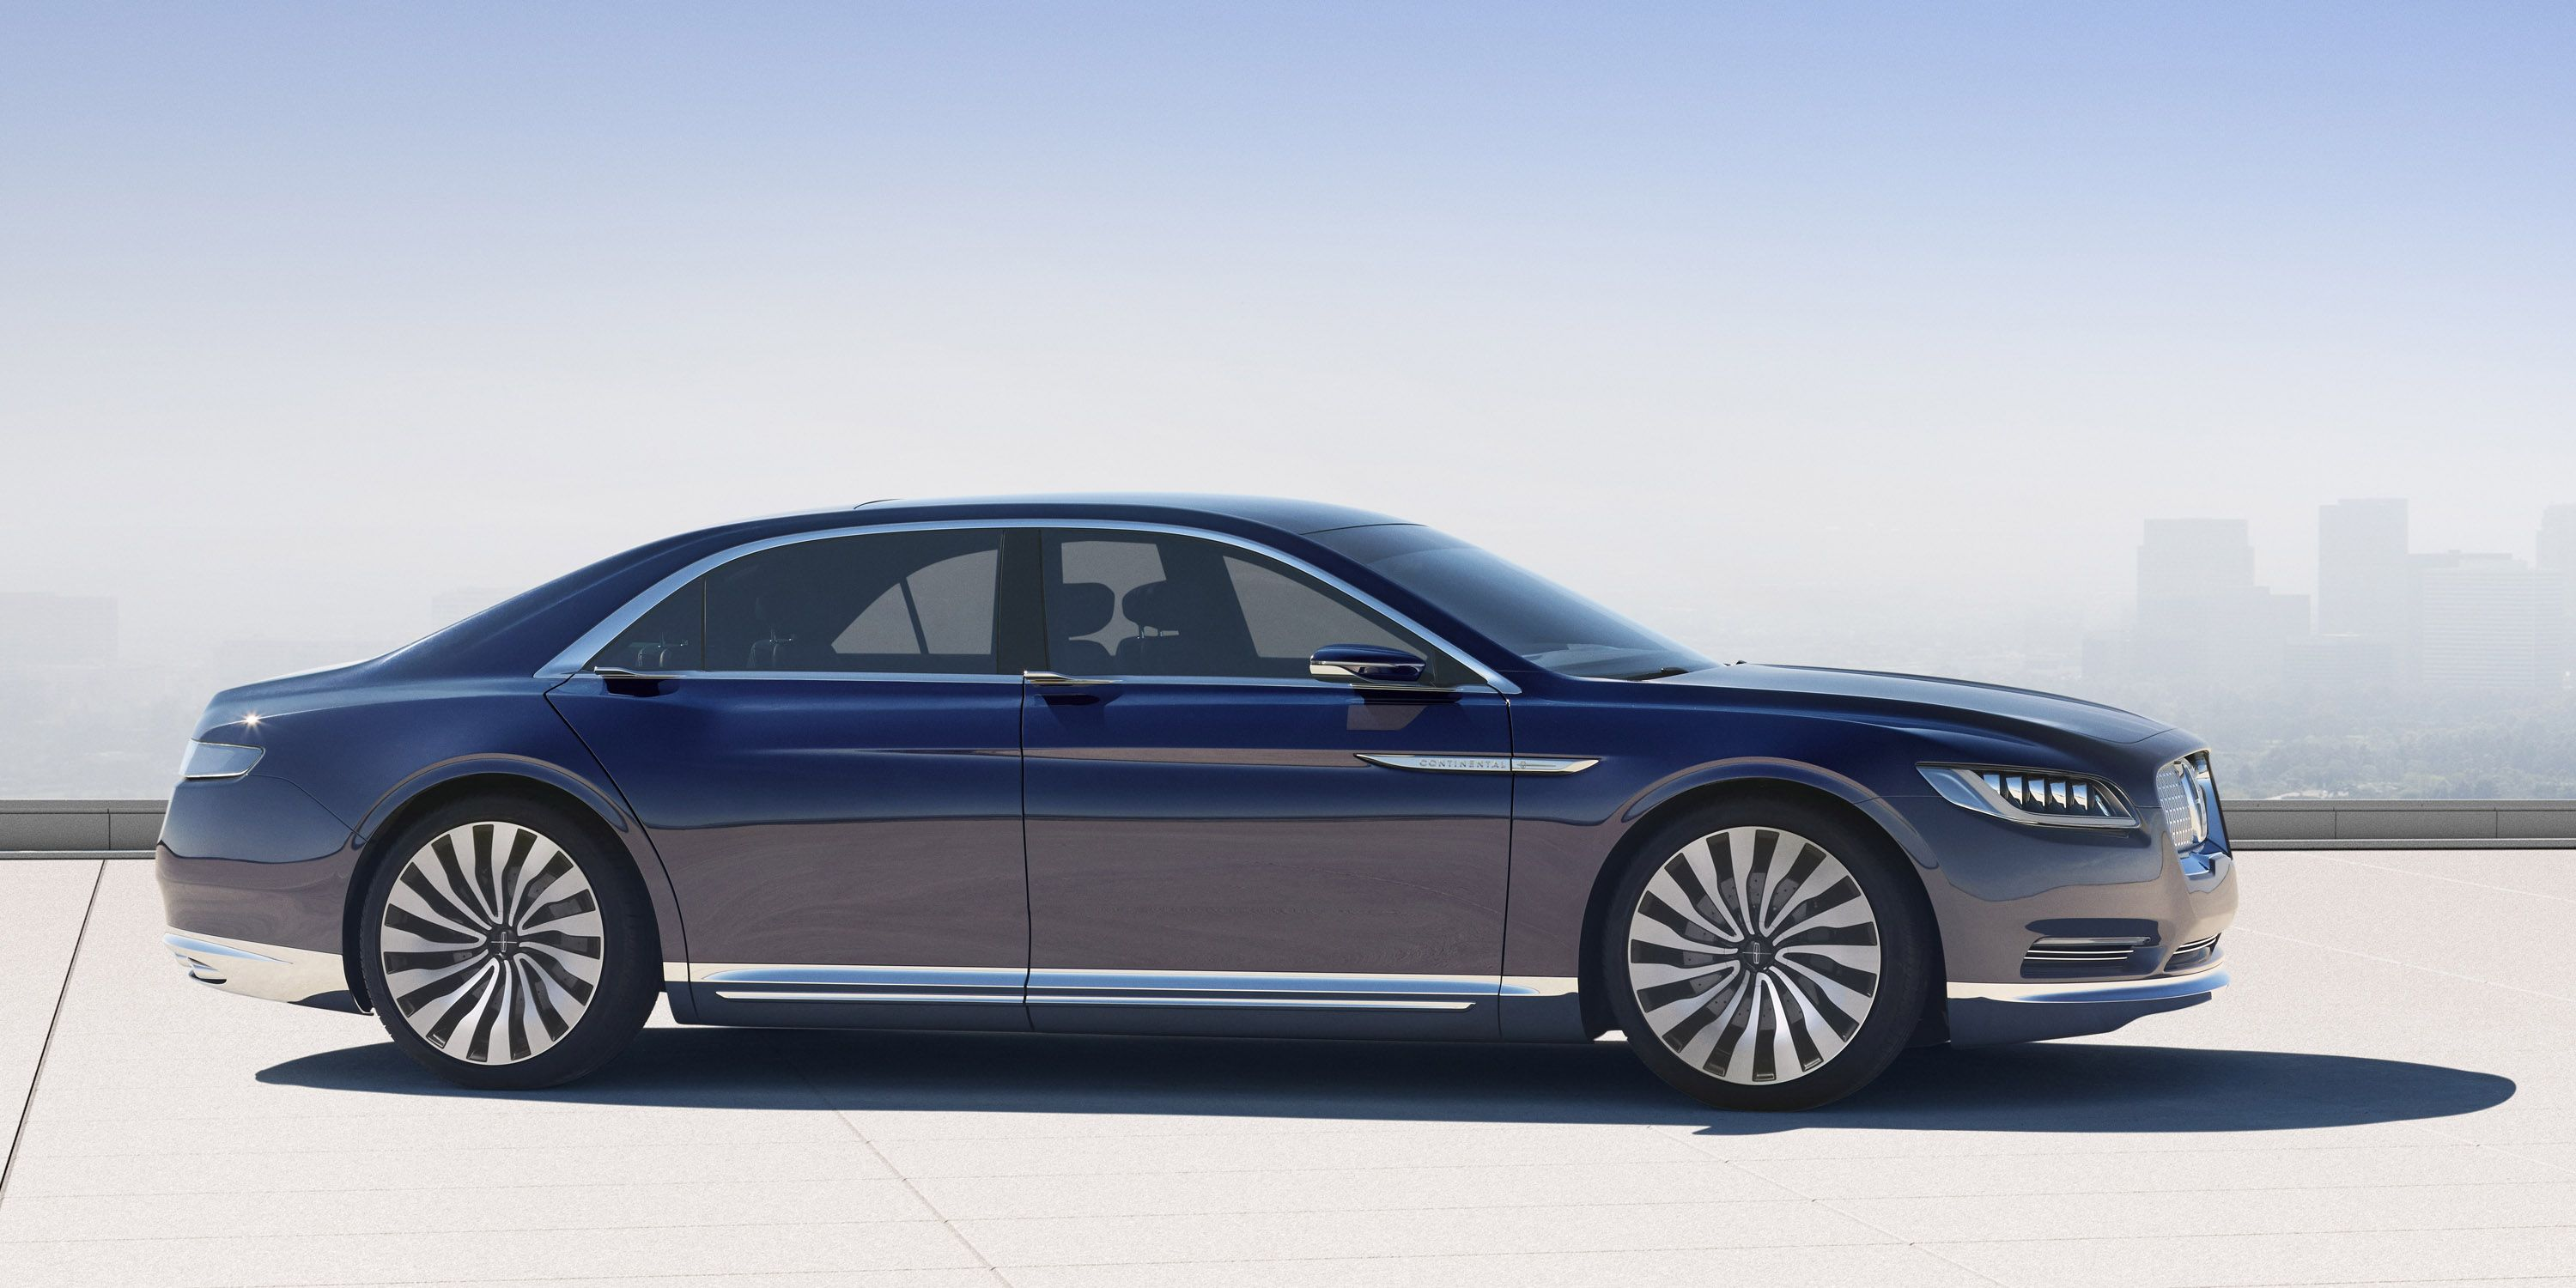 1427688296-lincolncontinentalconcept-02-profile Outstanding Lincoln Continental New York Auto Show Cars Trend